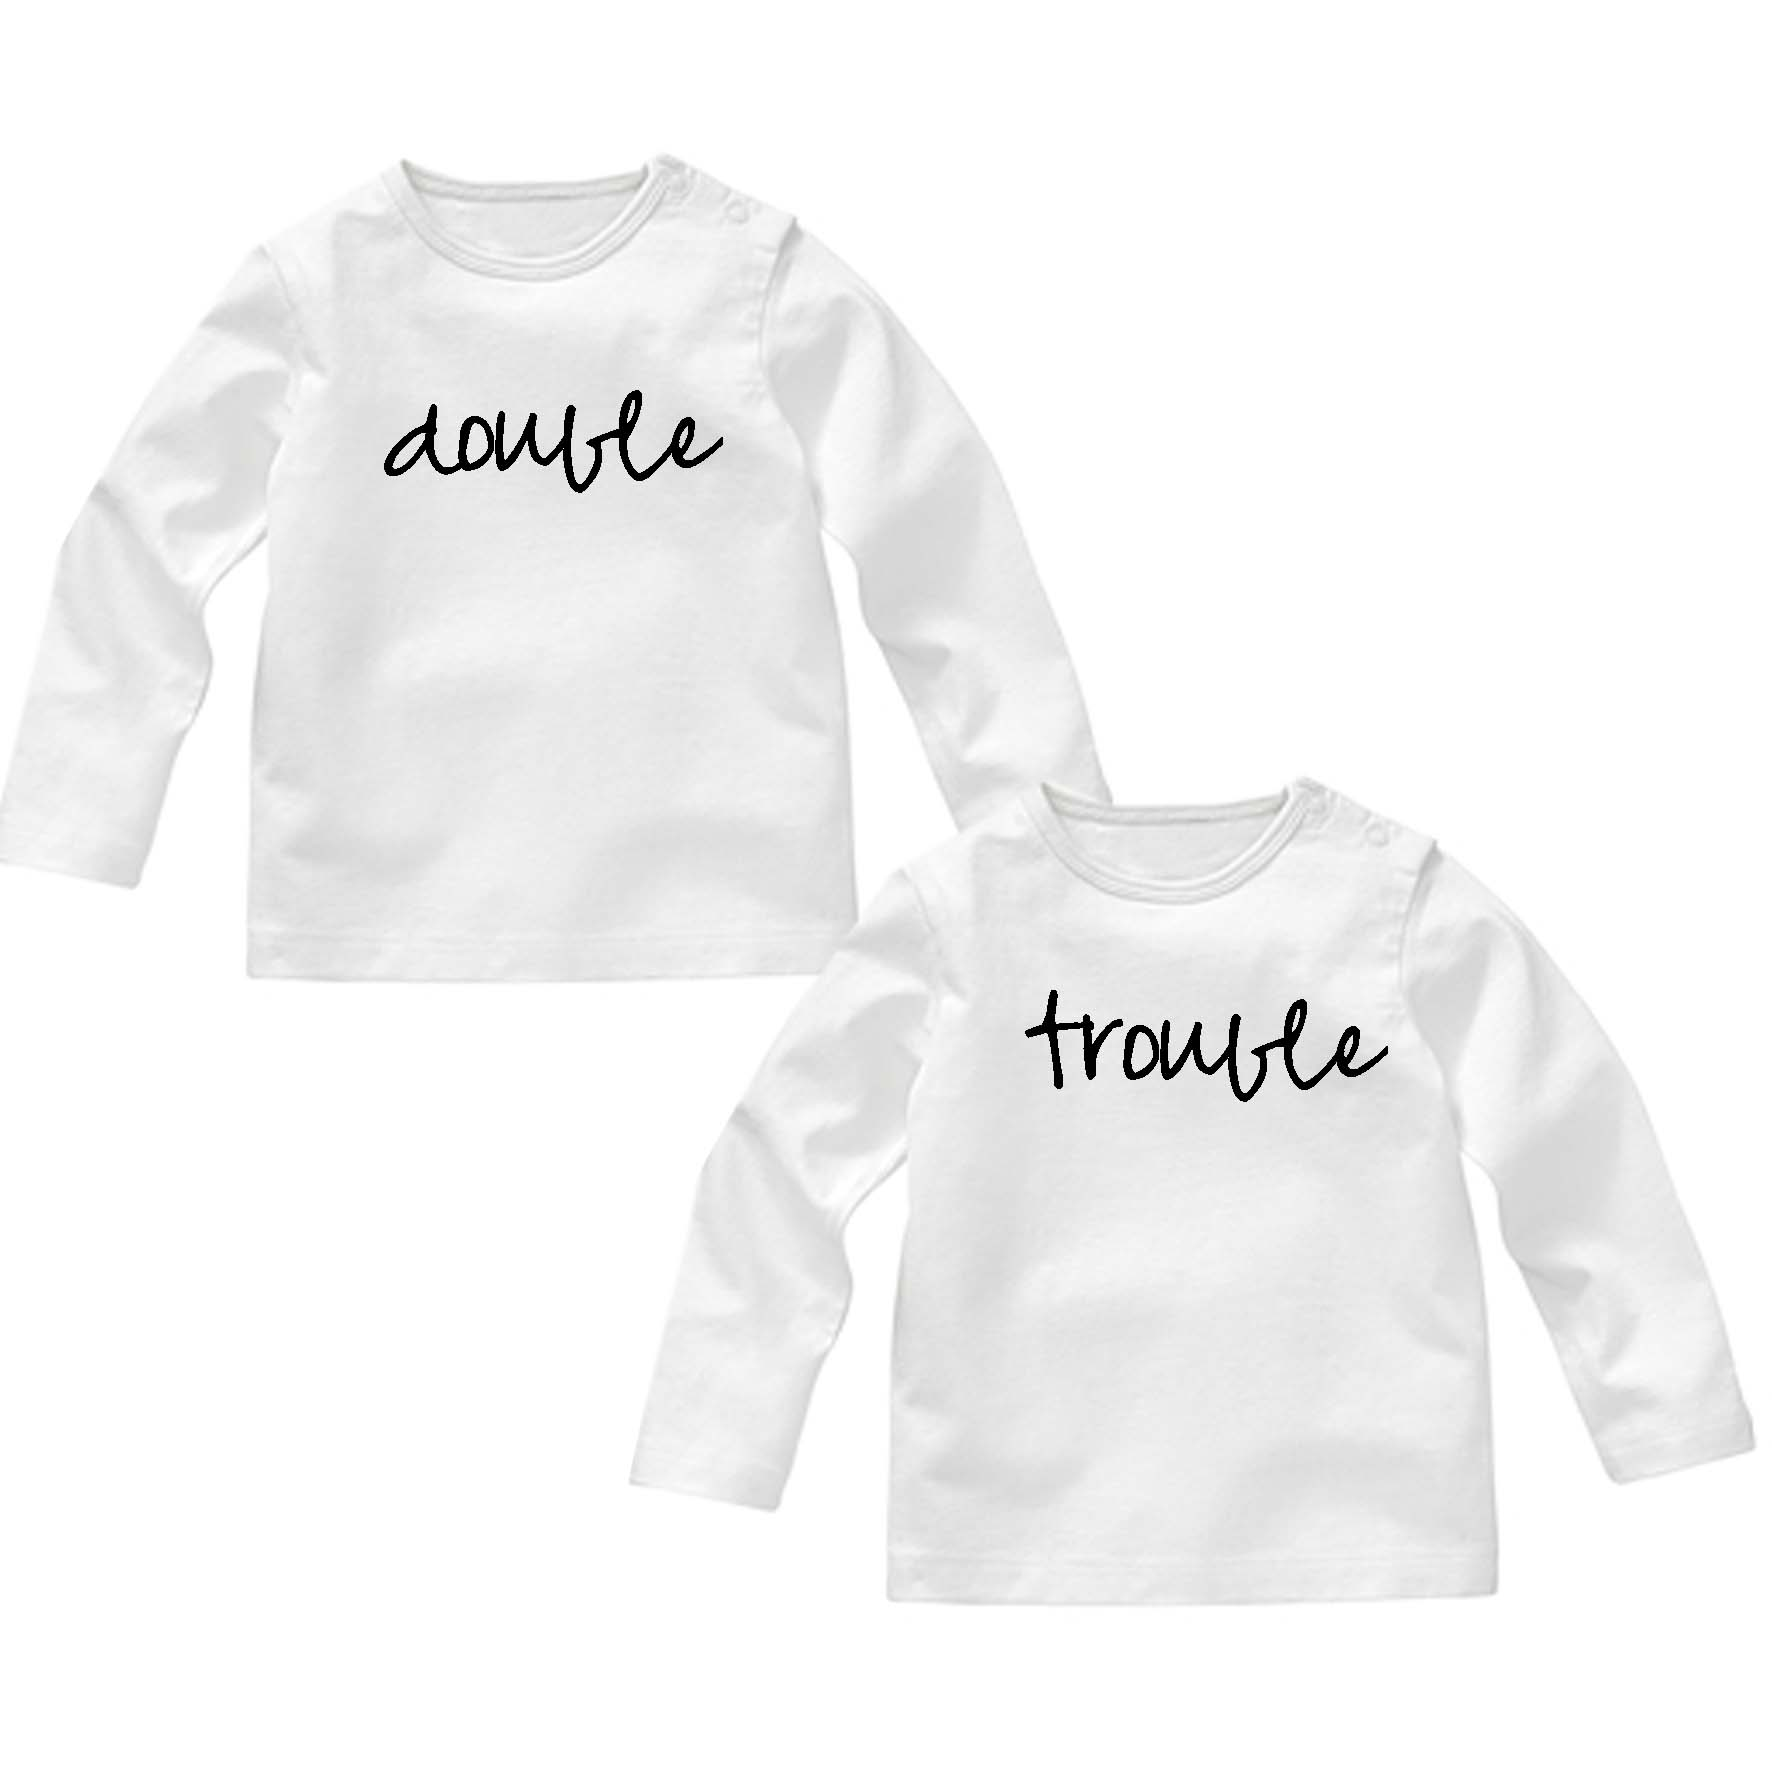 db214d76dbd Baby t-shirt set double trouble - Sweetest Design